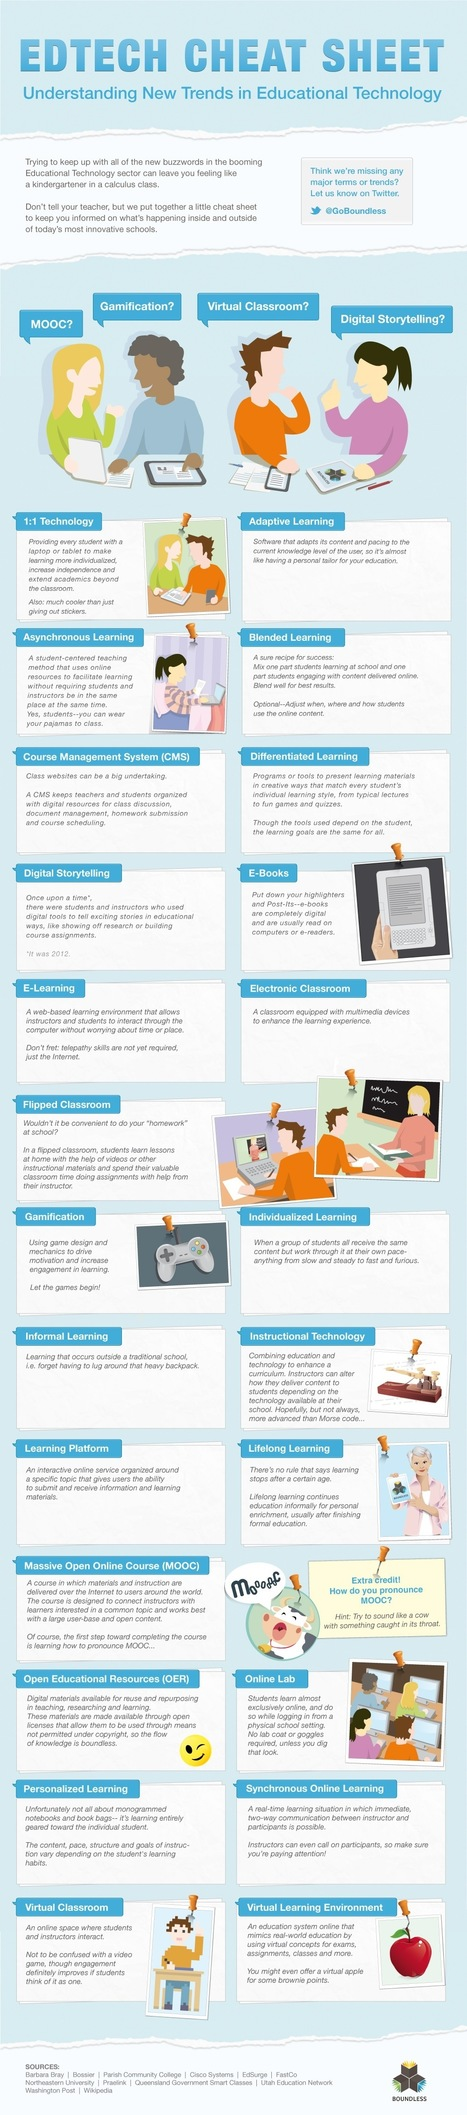 A Must Have Educational Technology Cheat Sheet | 21st Century Tools for Teaching and Learning | Scoop.it